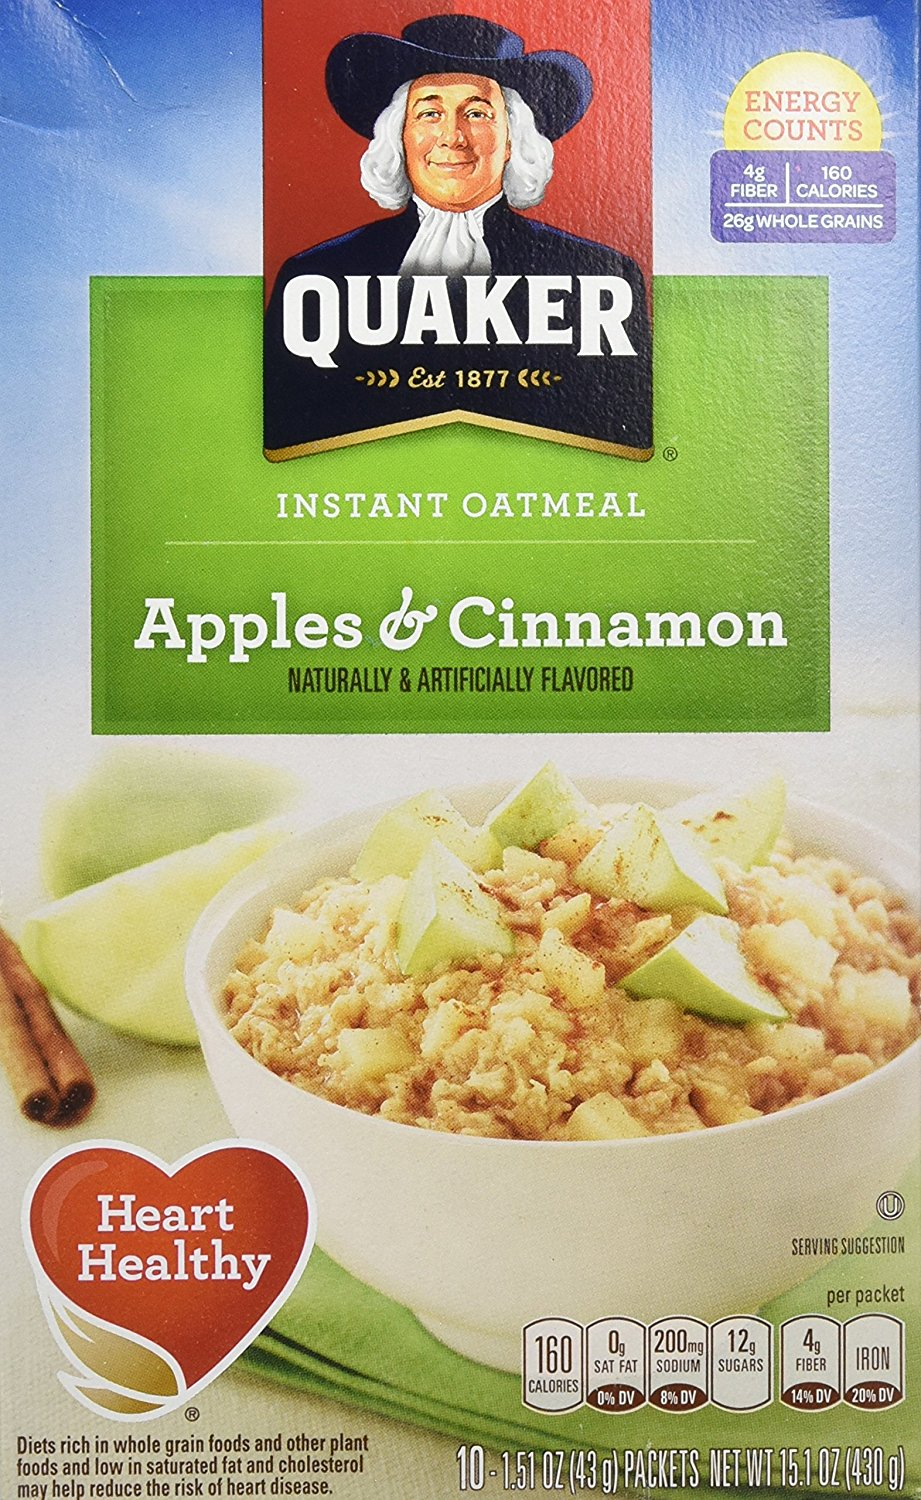 Quaker instant oatmeal coupons 2018